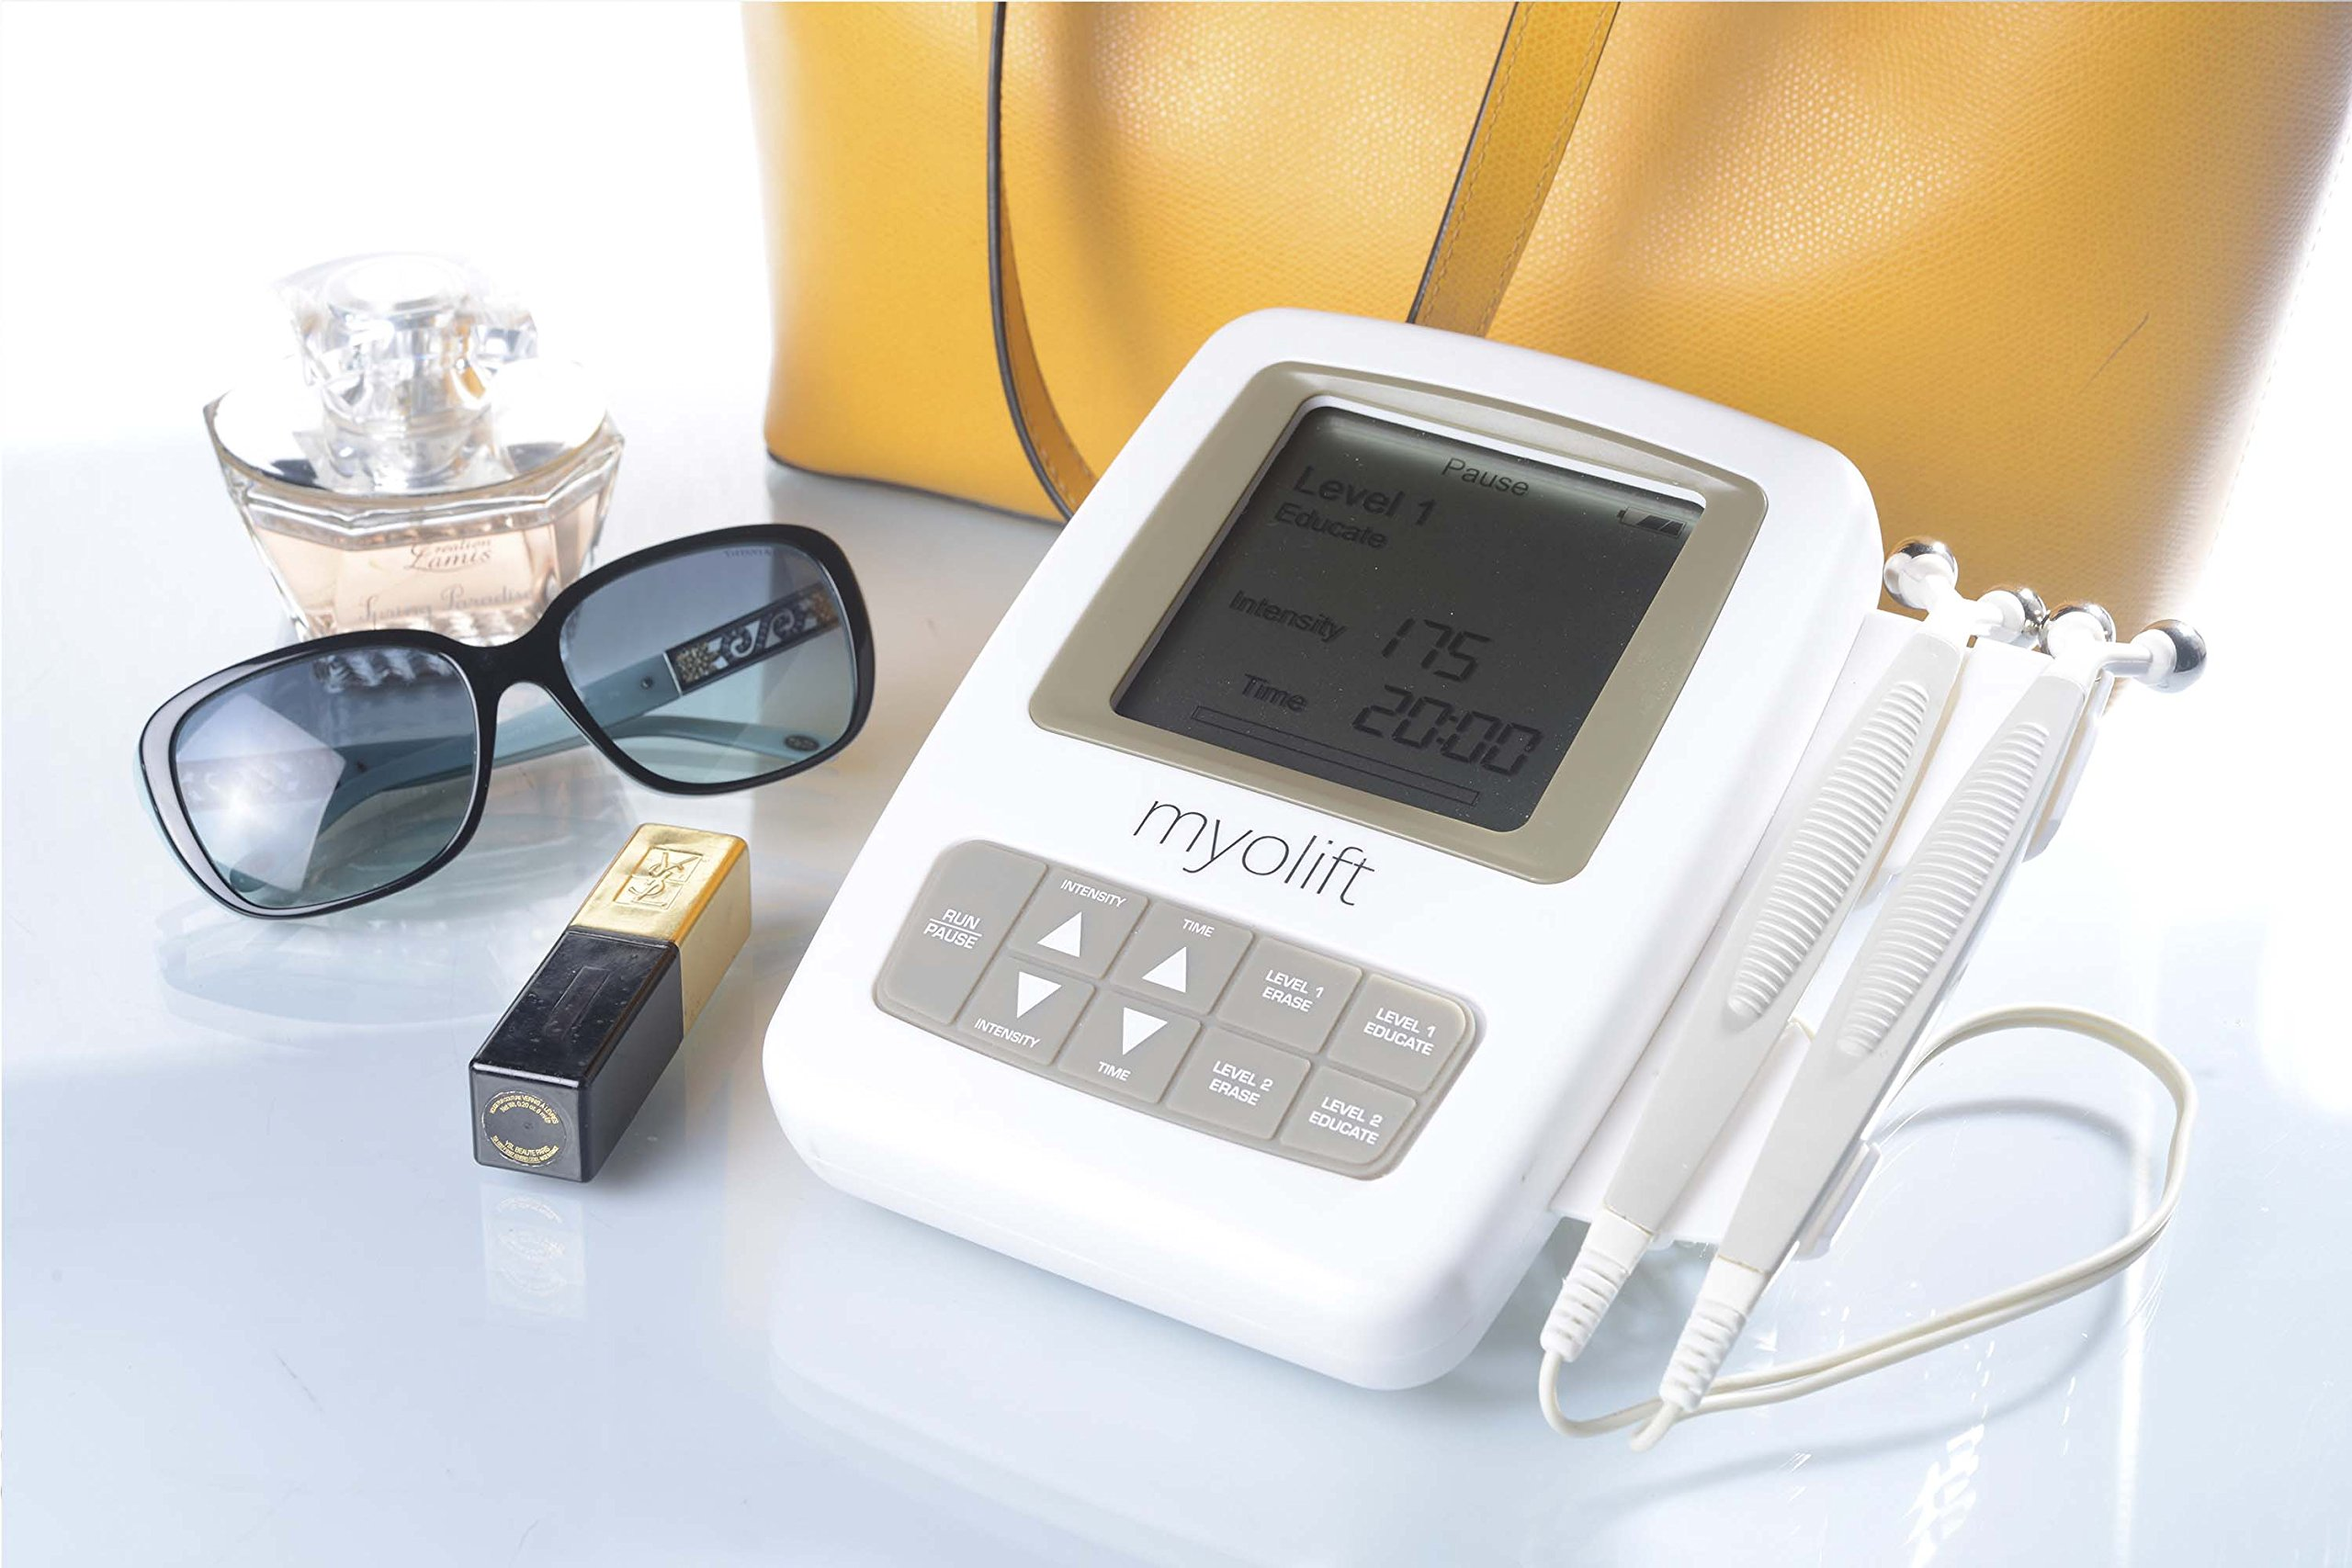 7E Myolift Professional Portable TRUE Microcurrent Face Lift Machine for face lifting, skin tightening, and skin toning. Microcurrent Device for Non Surgical Face Lift